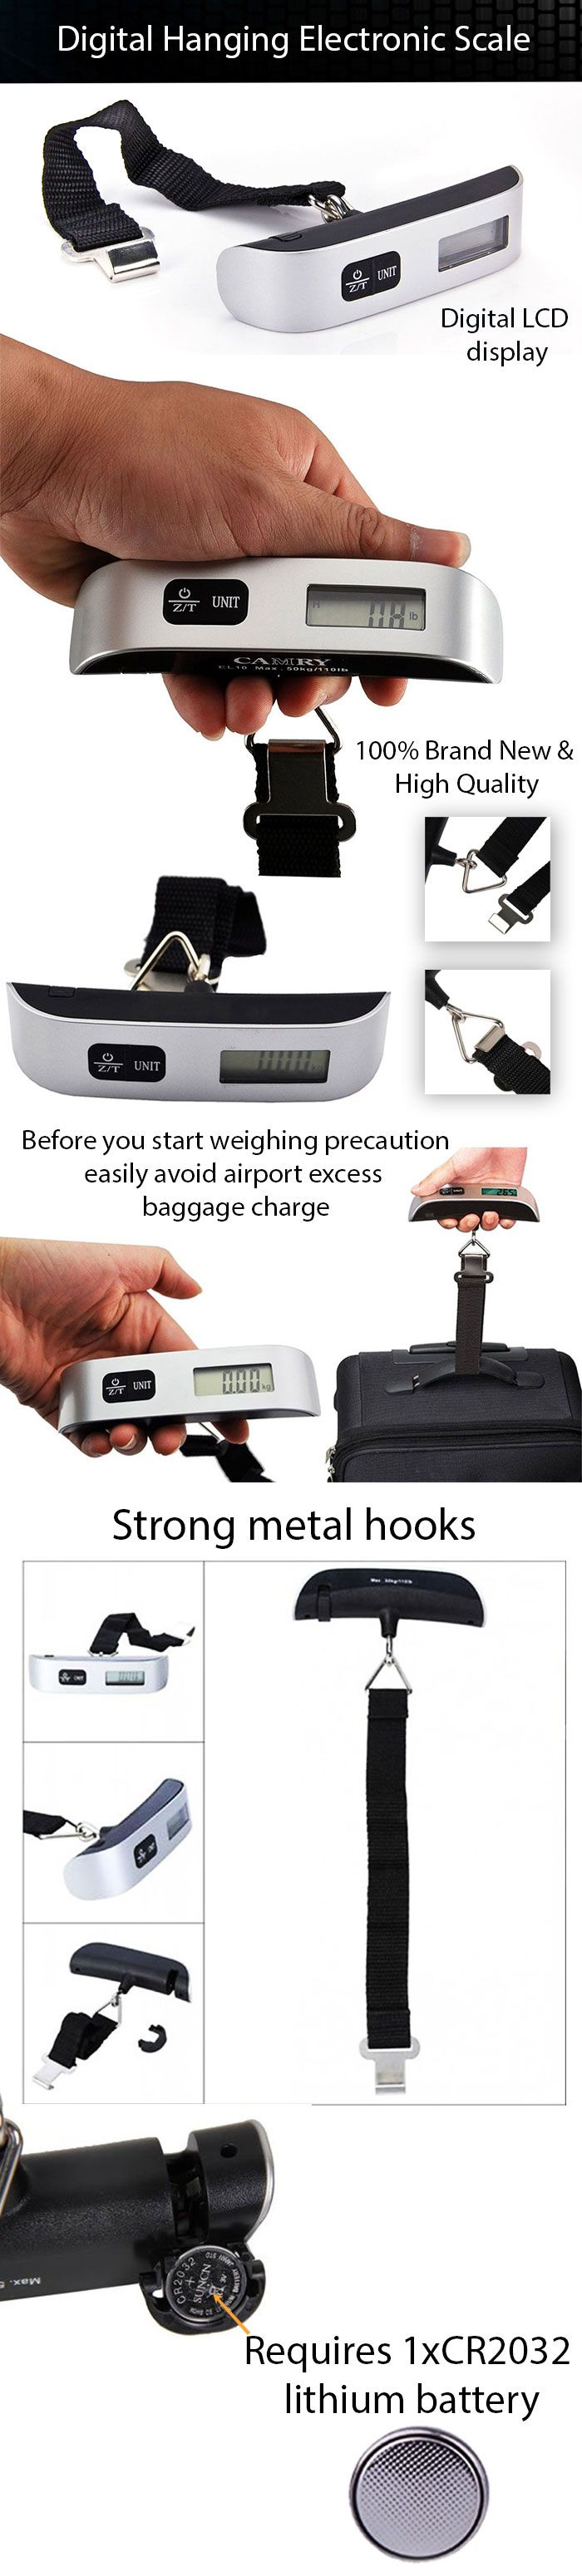 Wanna avoid excess baggage charge at airport? Use Digital Hanging Electronic Scale